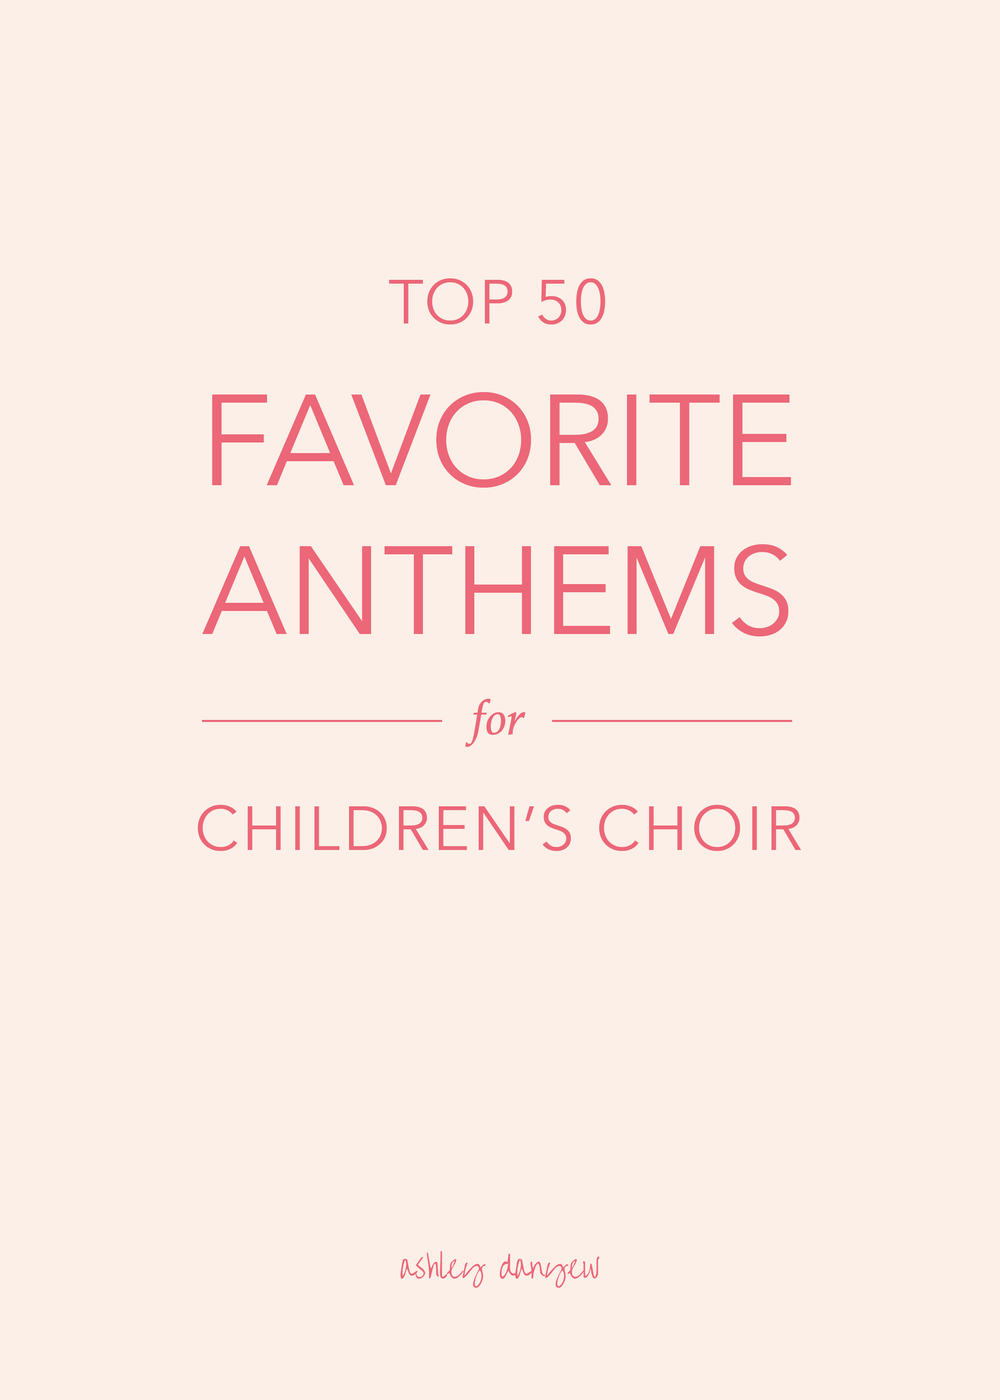 Top 50 Favorite Anthems for Children's Choir-01.png